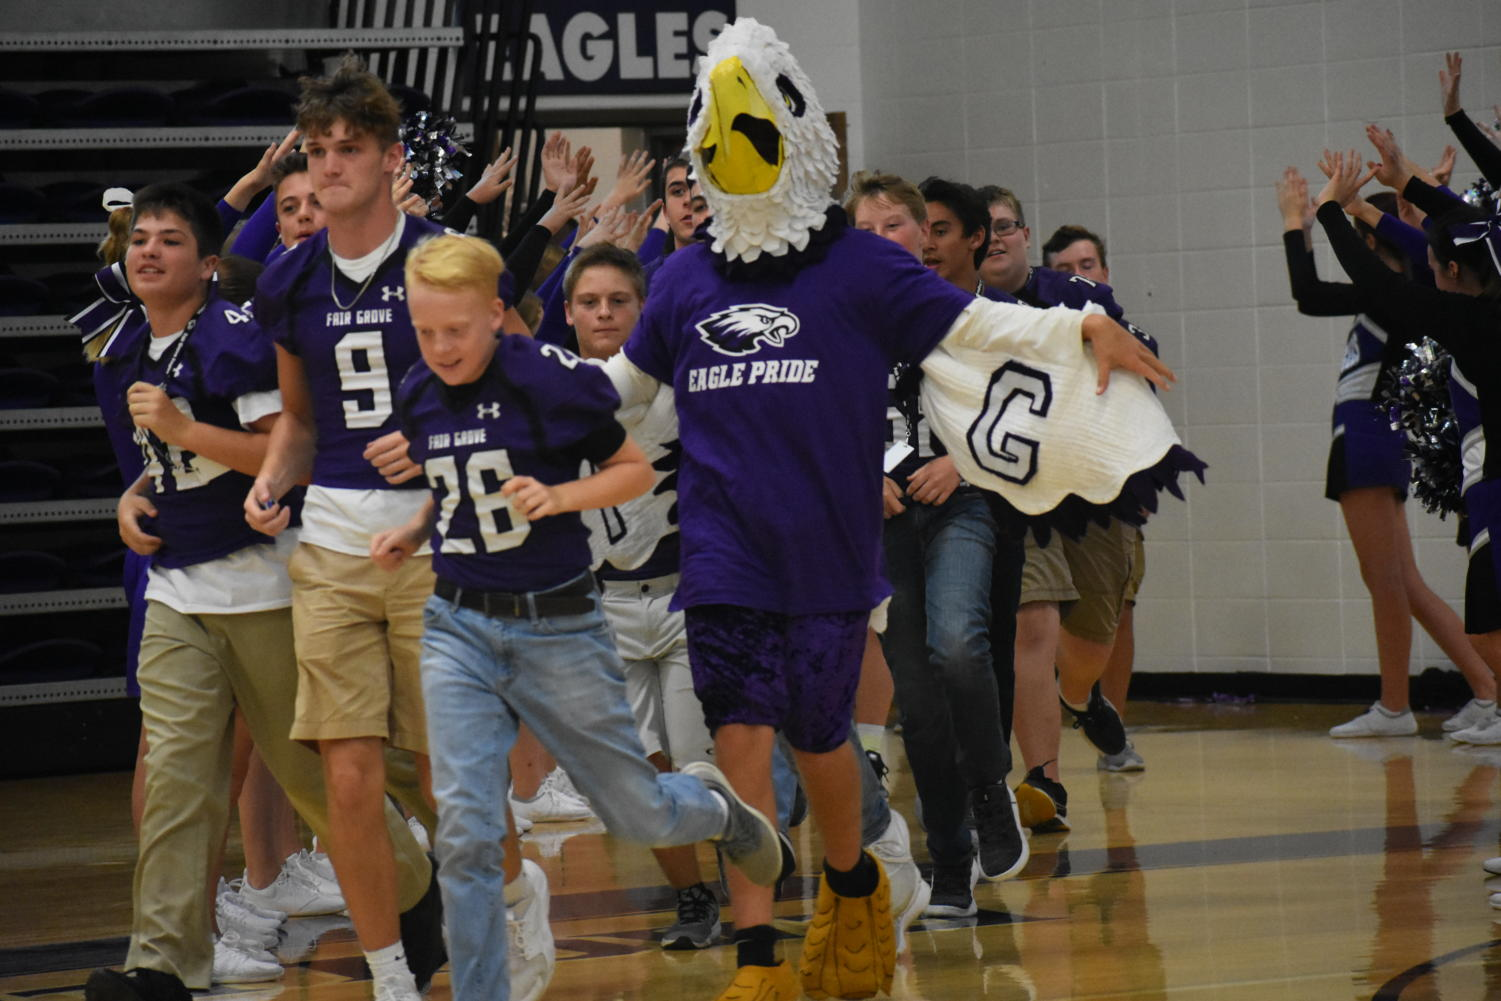 The Eagle runs out with members of the football team at the pep assembly